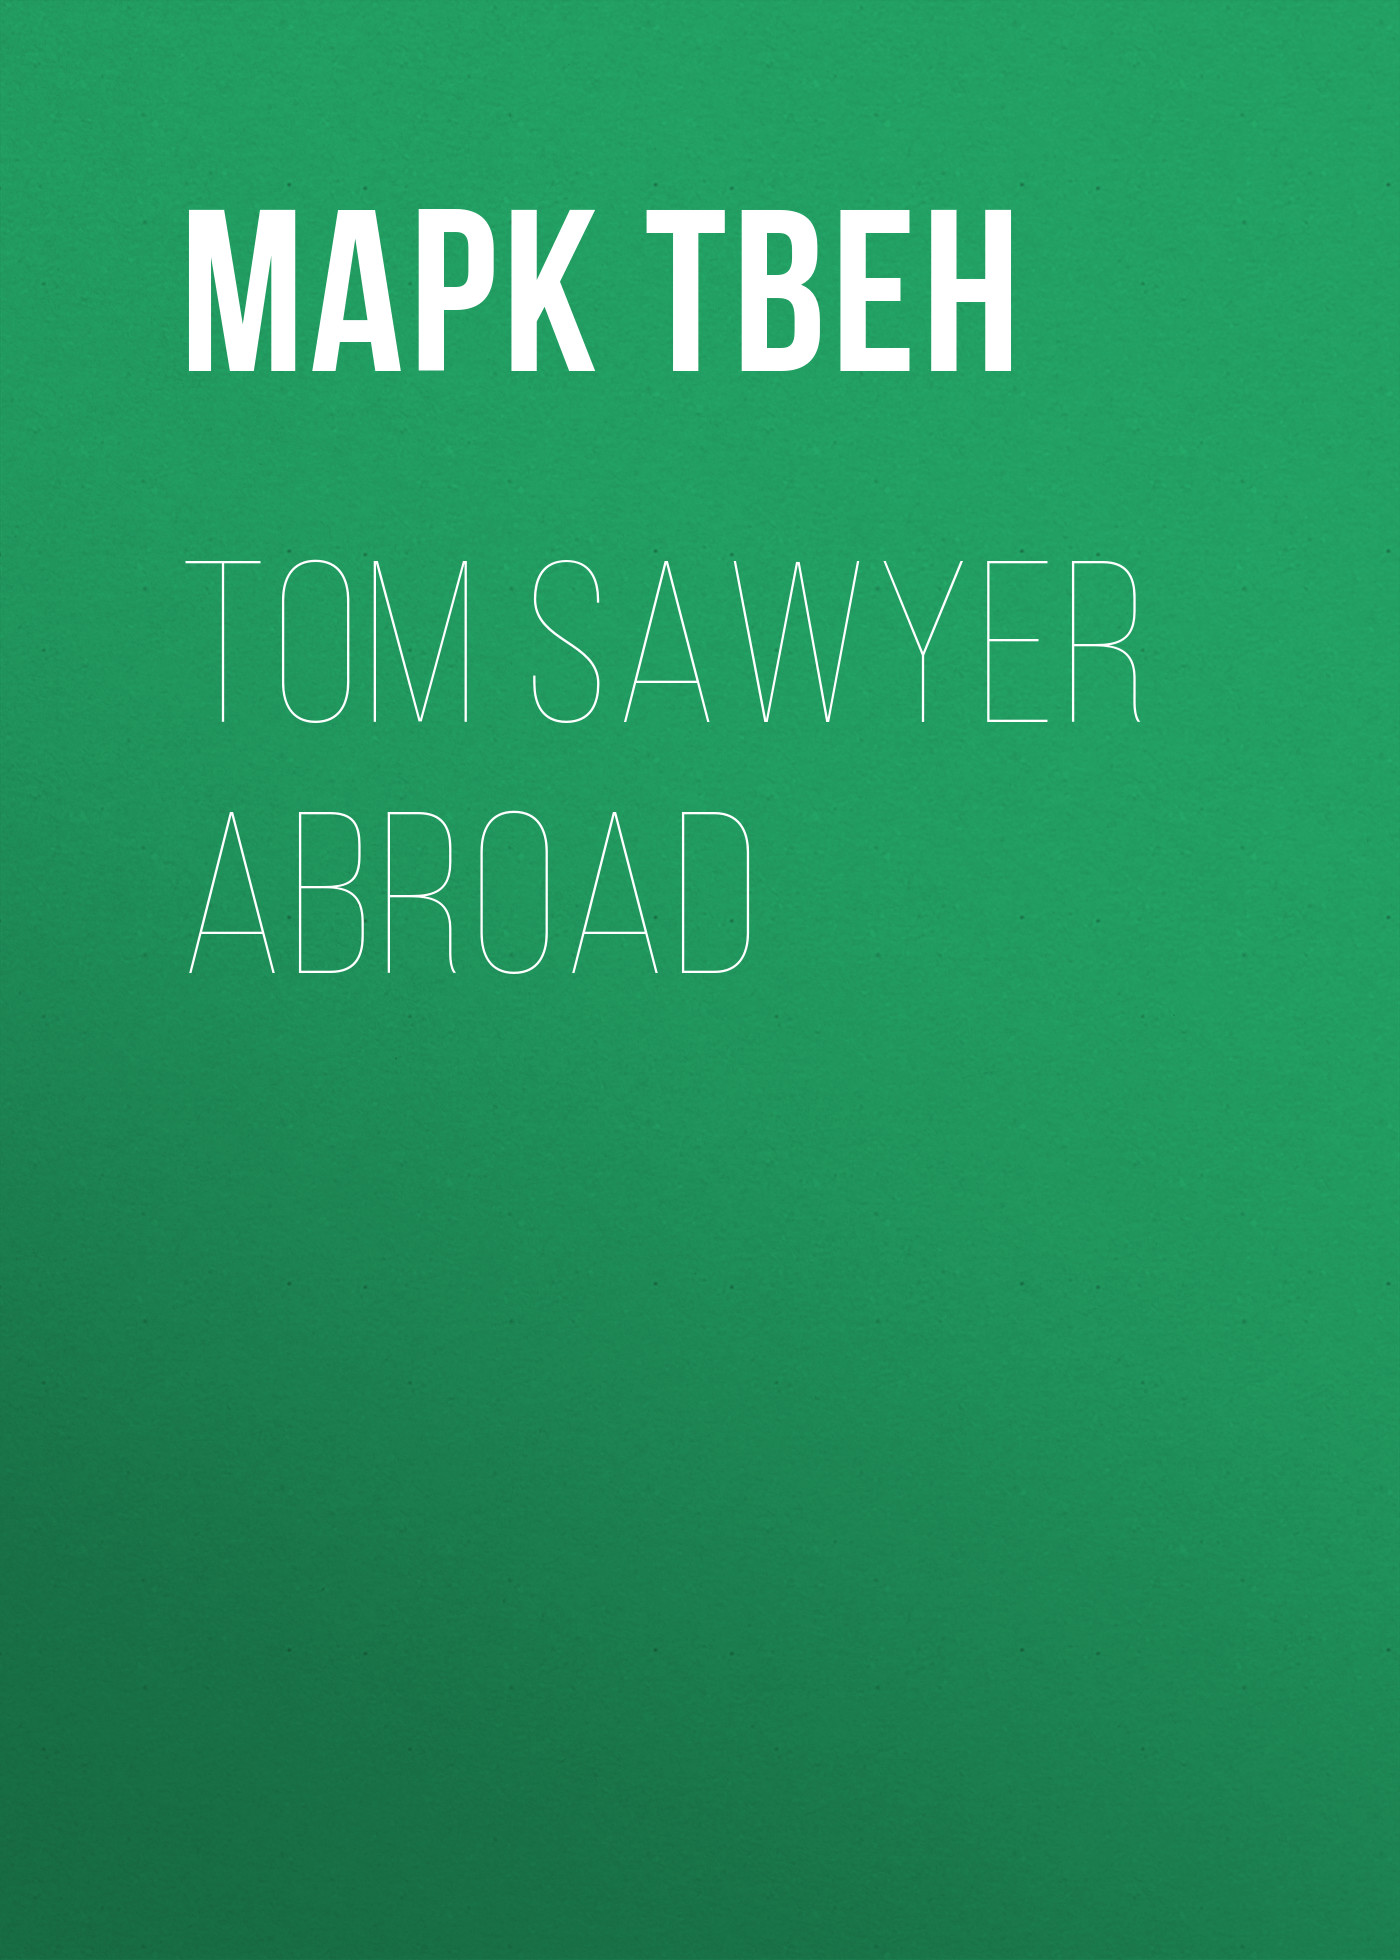 Марк Твен Tom Sawyer Abroad марк твен adventures of tom sawyer